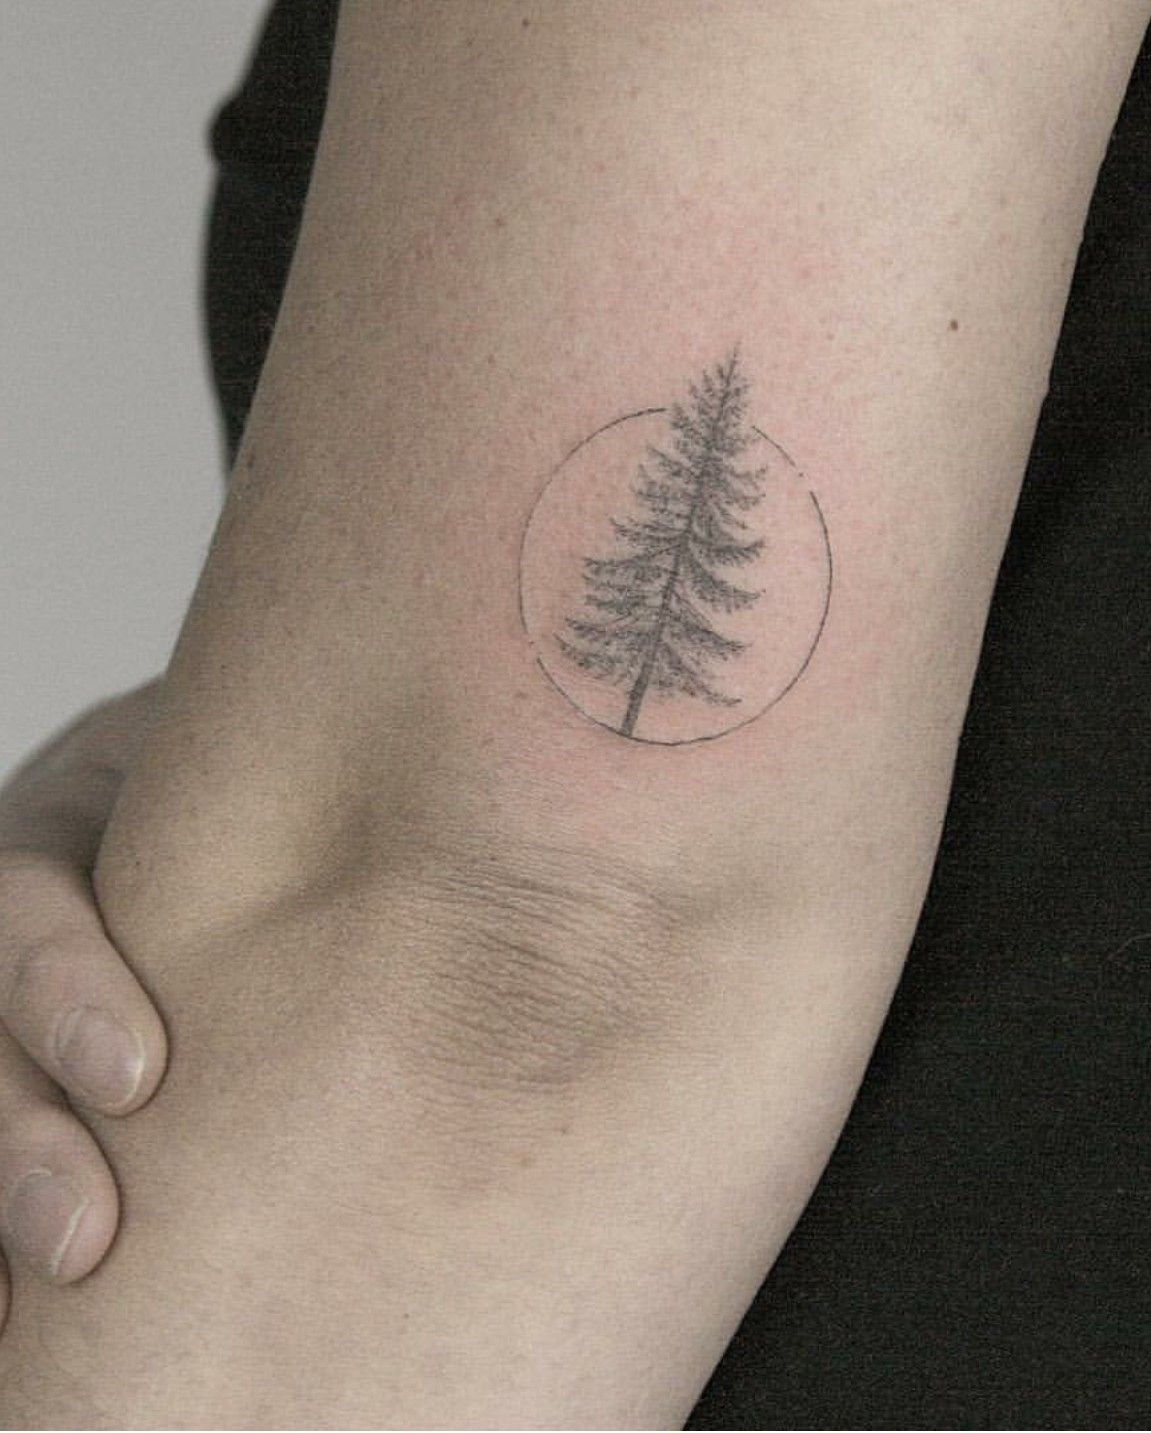 Dainty pine tree tattoo Pine tattoo, Dainty tattoos